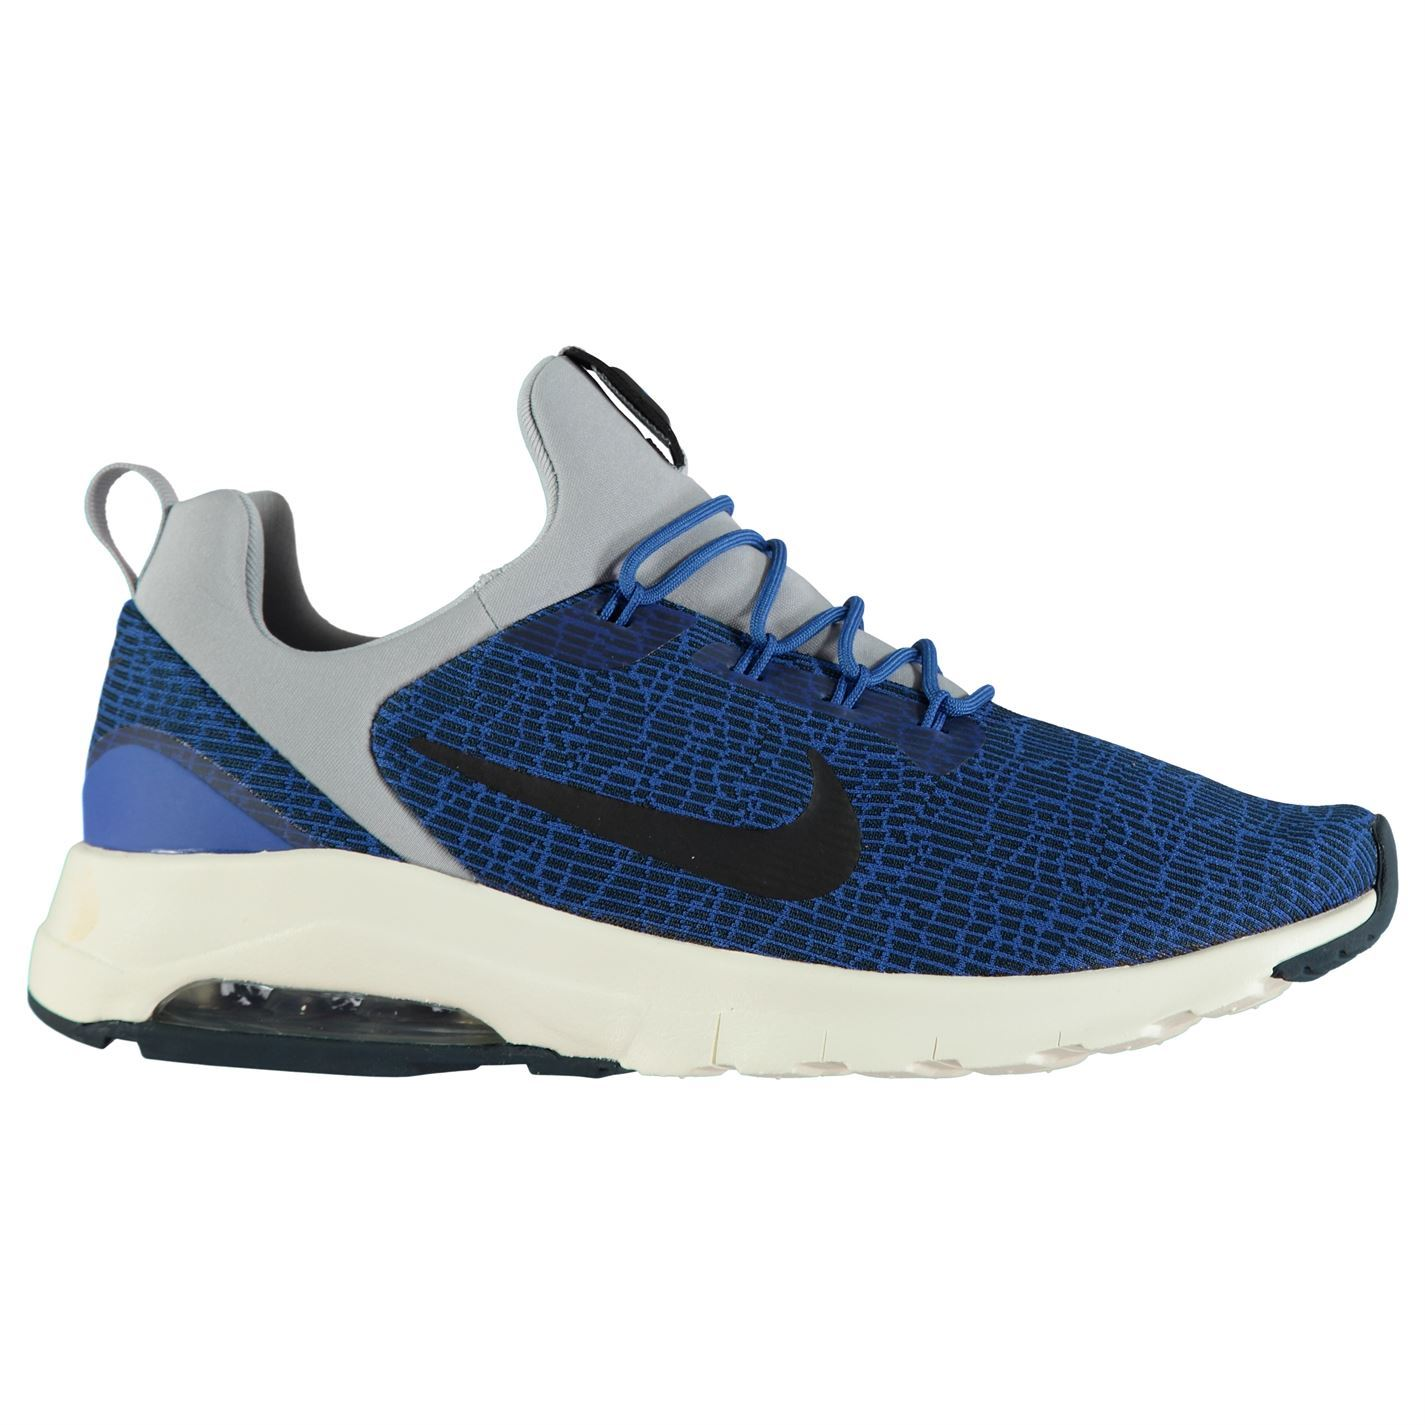 sale retailer f8e8d 05da4 ... Nike Air Max Motion Trainers Mens Blue Black Navy Athletic Sneakers  Shoes ...